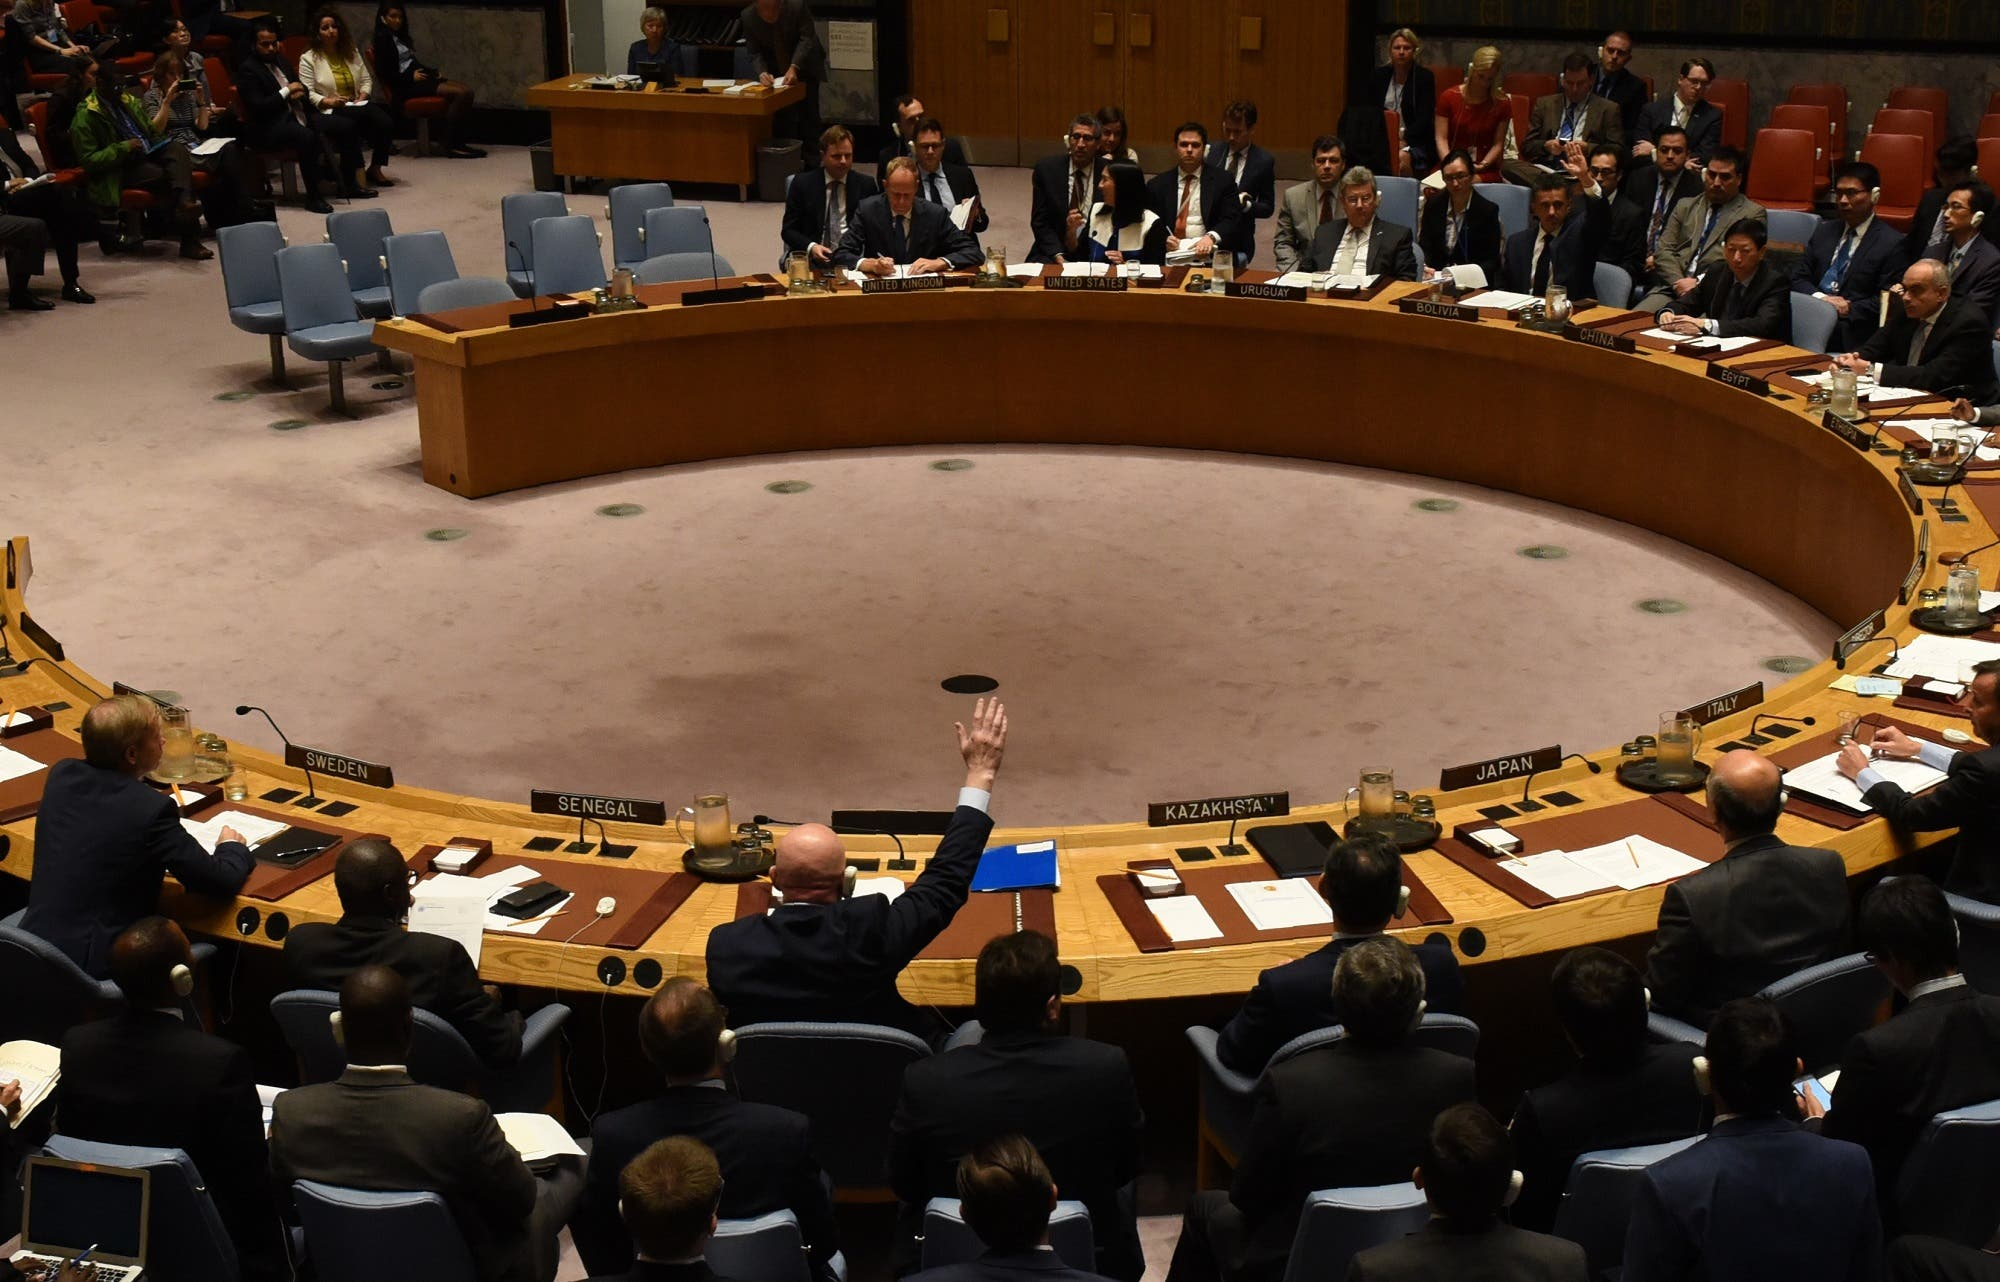 Security Council votes to extend probe into who is responsible for chemical weapons attacks in Syria at the UN on October 24, 2017. Russian Ambassador to the UN Vassily Nebenzia (raising his hand) voted no to the resolution. (AFP)